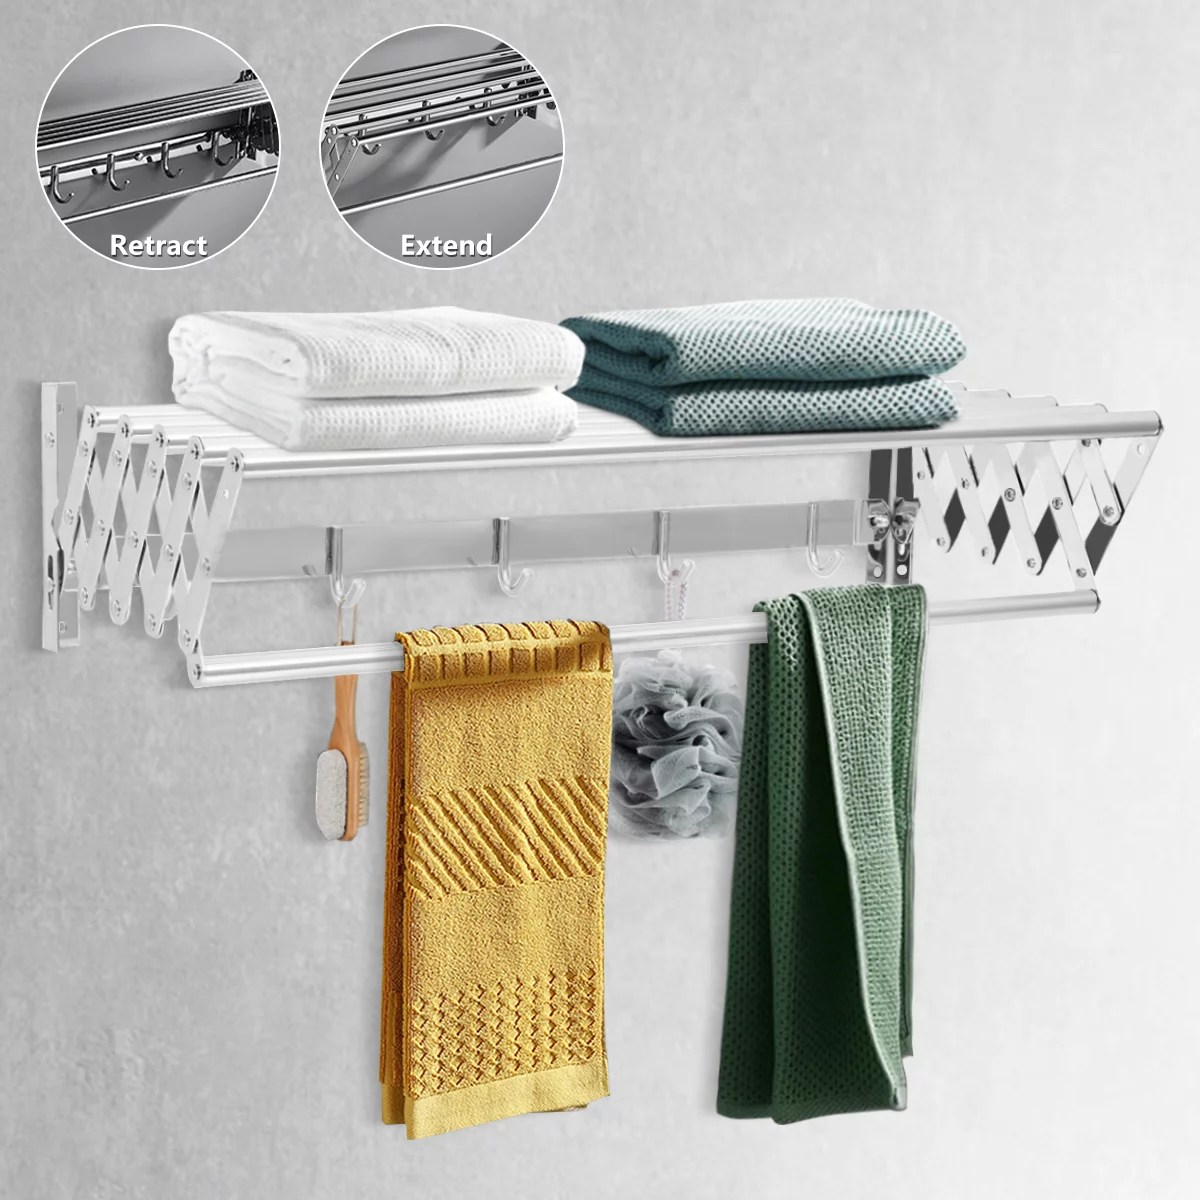 stainless steel wall mounted expandable clothes drying rack towel rack accordion clothes drying rack pull out laundry hanger room home gift